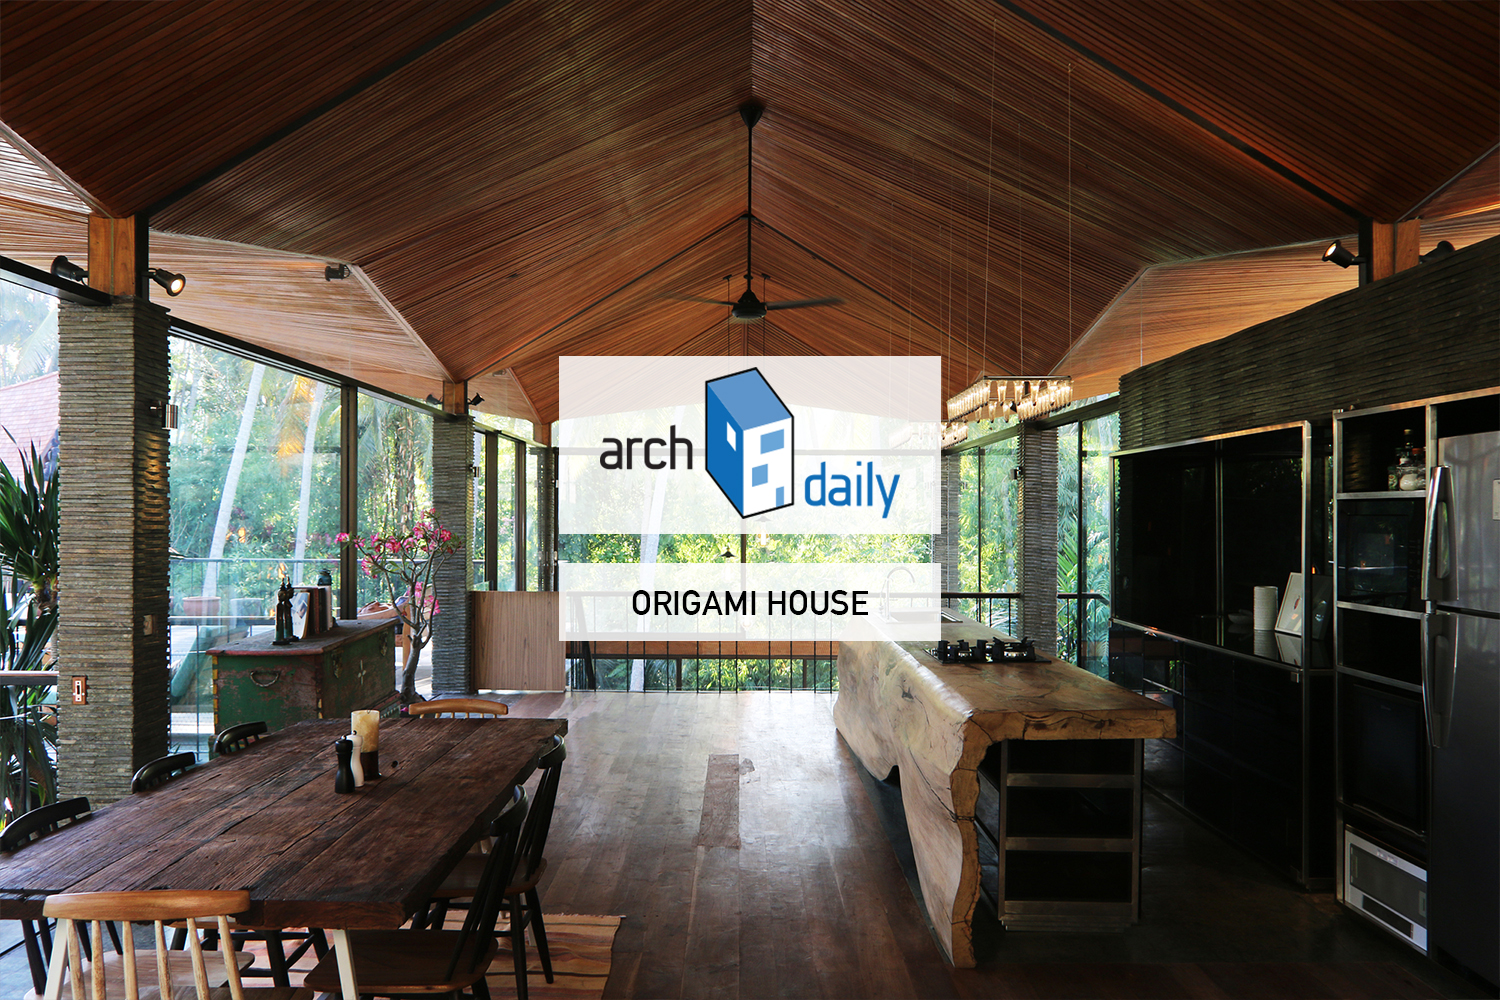 002-ARCHDAILY-ORIGAMI HOUSE.jpg